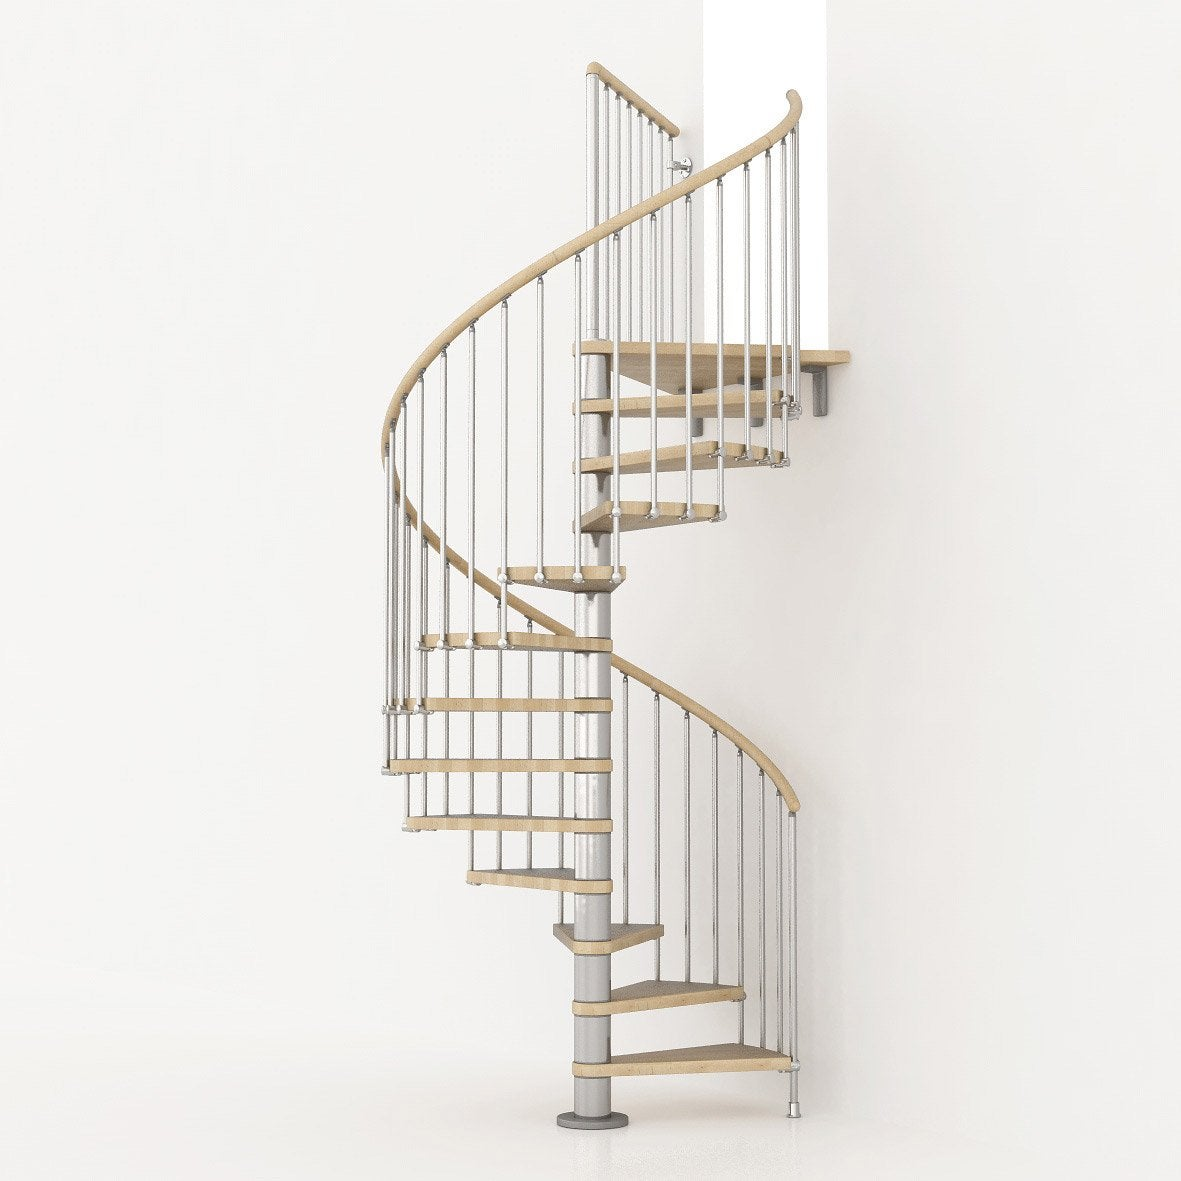 Escalier colima on rond ring structure m tal marche bois - Escalier colimacon leroy merlin ...